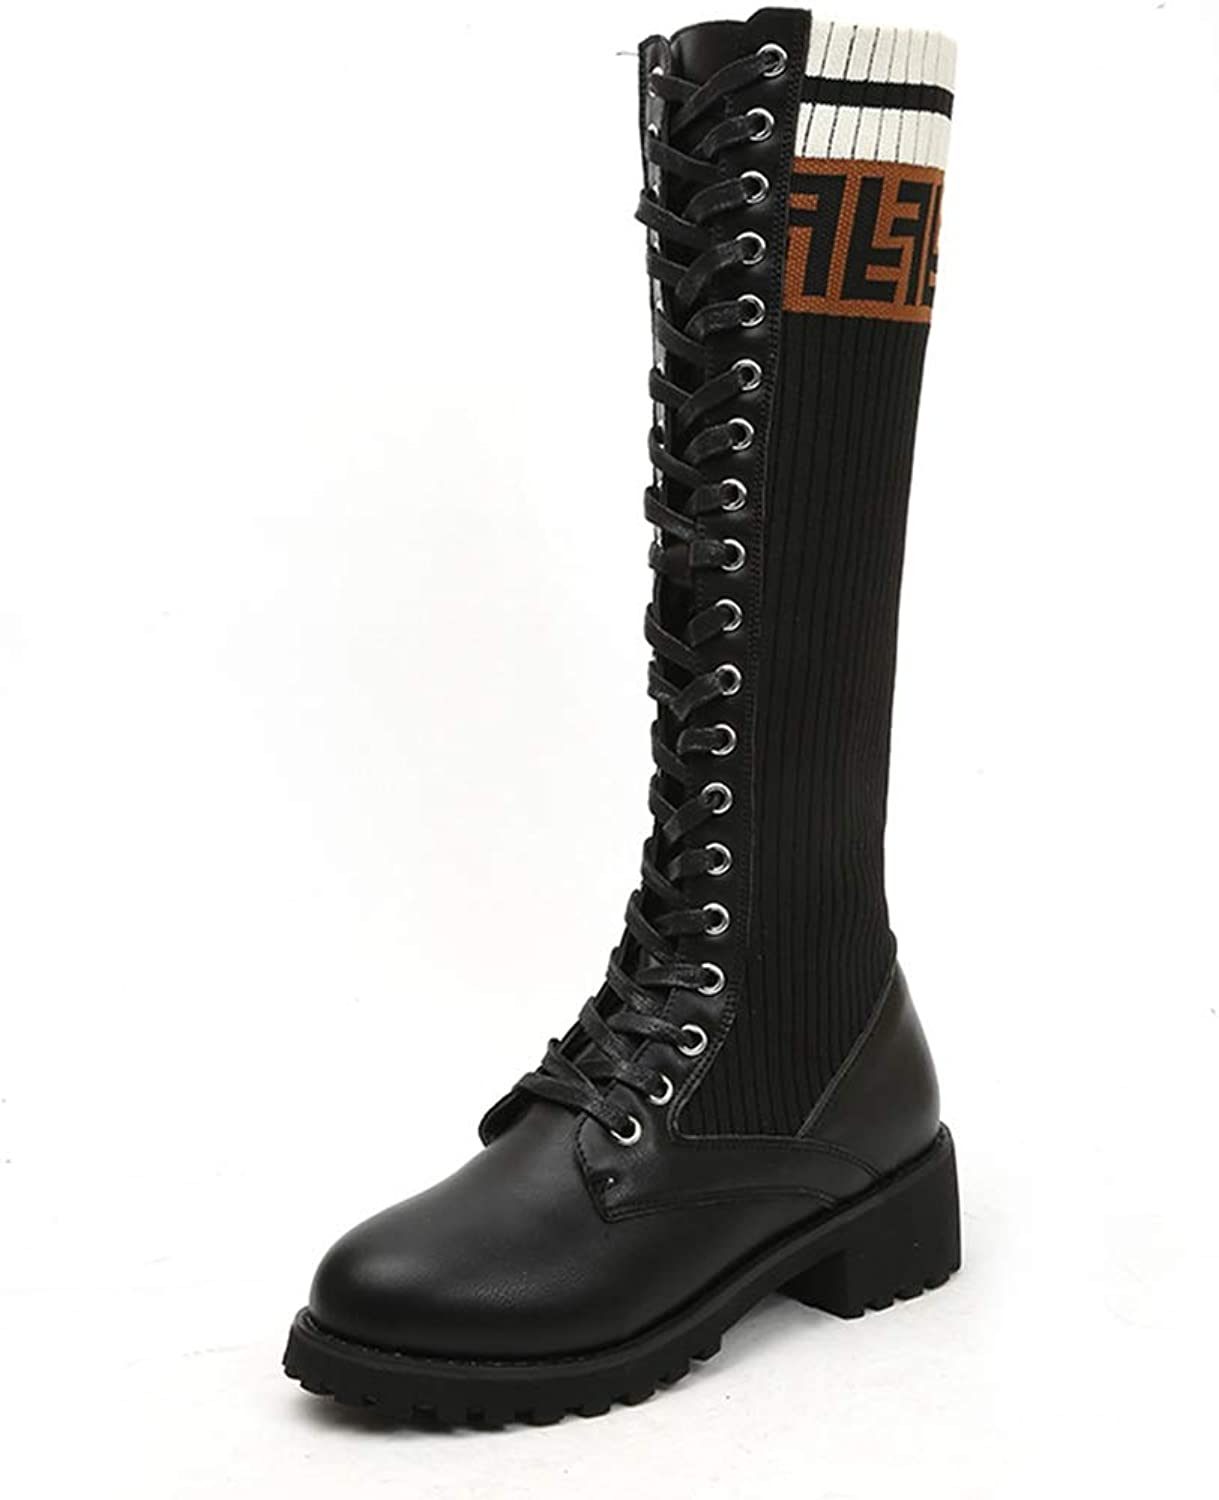 York Zhu Tall Boots for Women - Lace up Mid Calf Riding Boots for Women